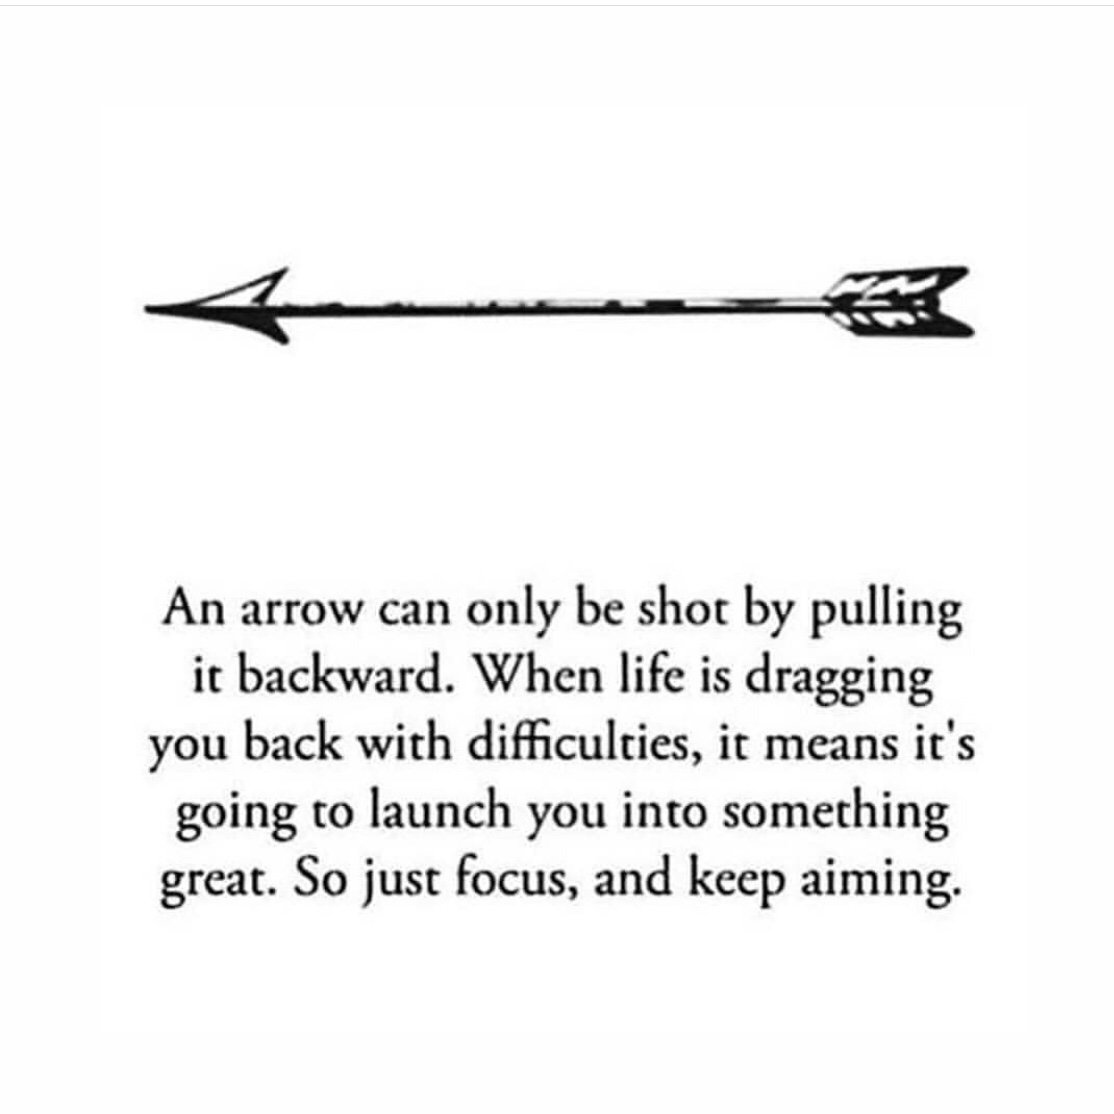 Picture of and arrow with inspirational quote